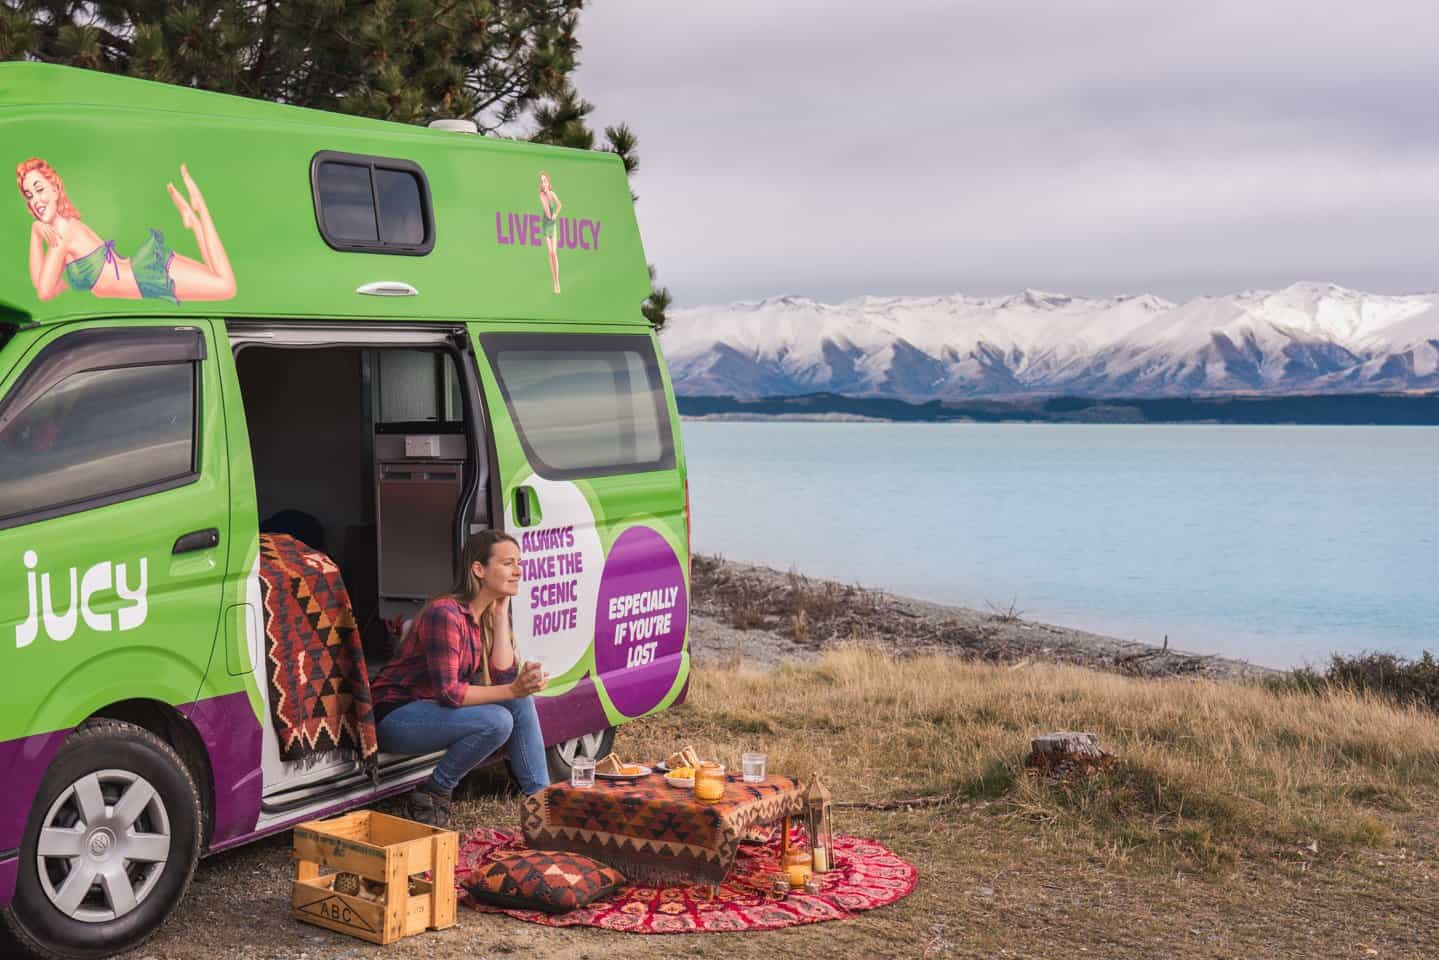 You will have to carefully consider comfort, budget, and mobility to choose the right vehicle for campervanning New Zealand.